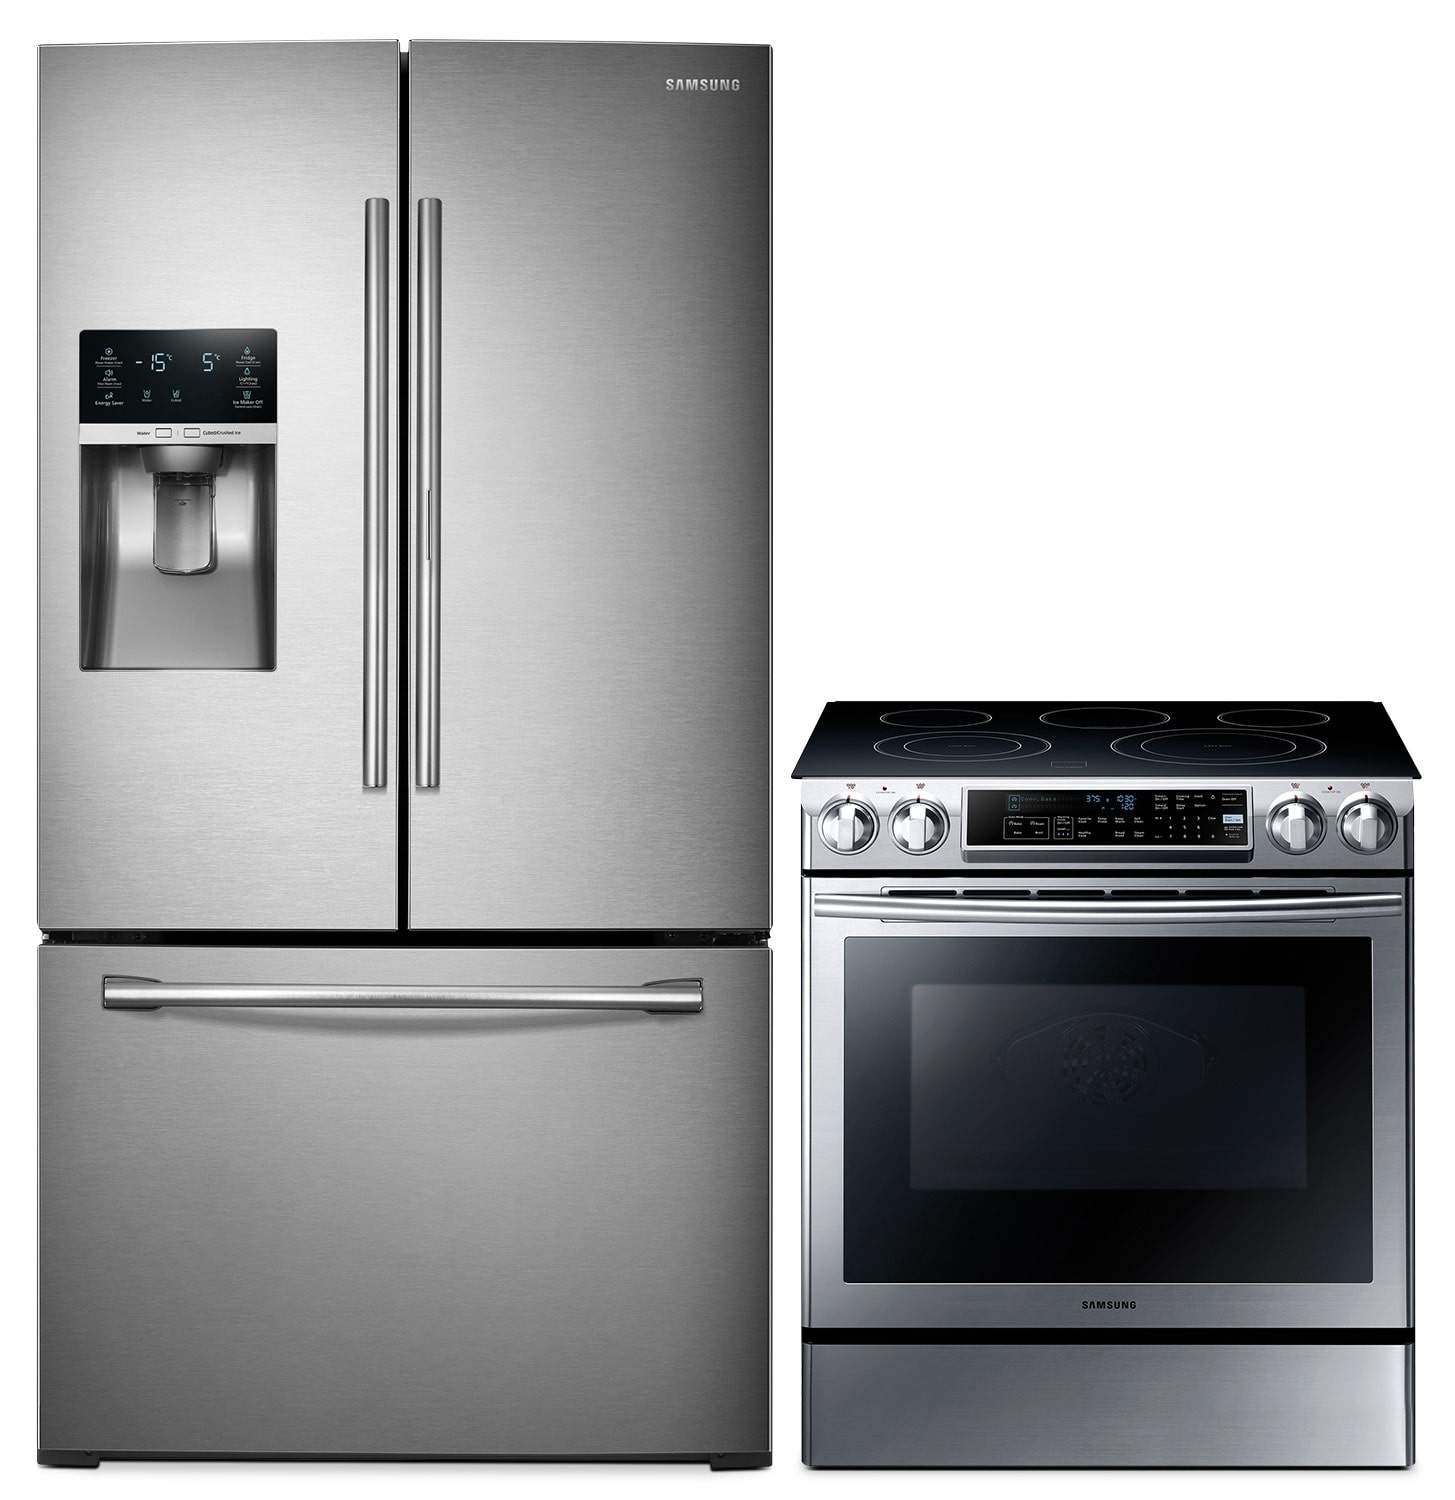 Refrigerators and Freezers - Samsung® 28 Cu. Ft. 3-Door Refrigerator and 5.8 Cu. Ft. Slide-In Electric Range Package